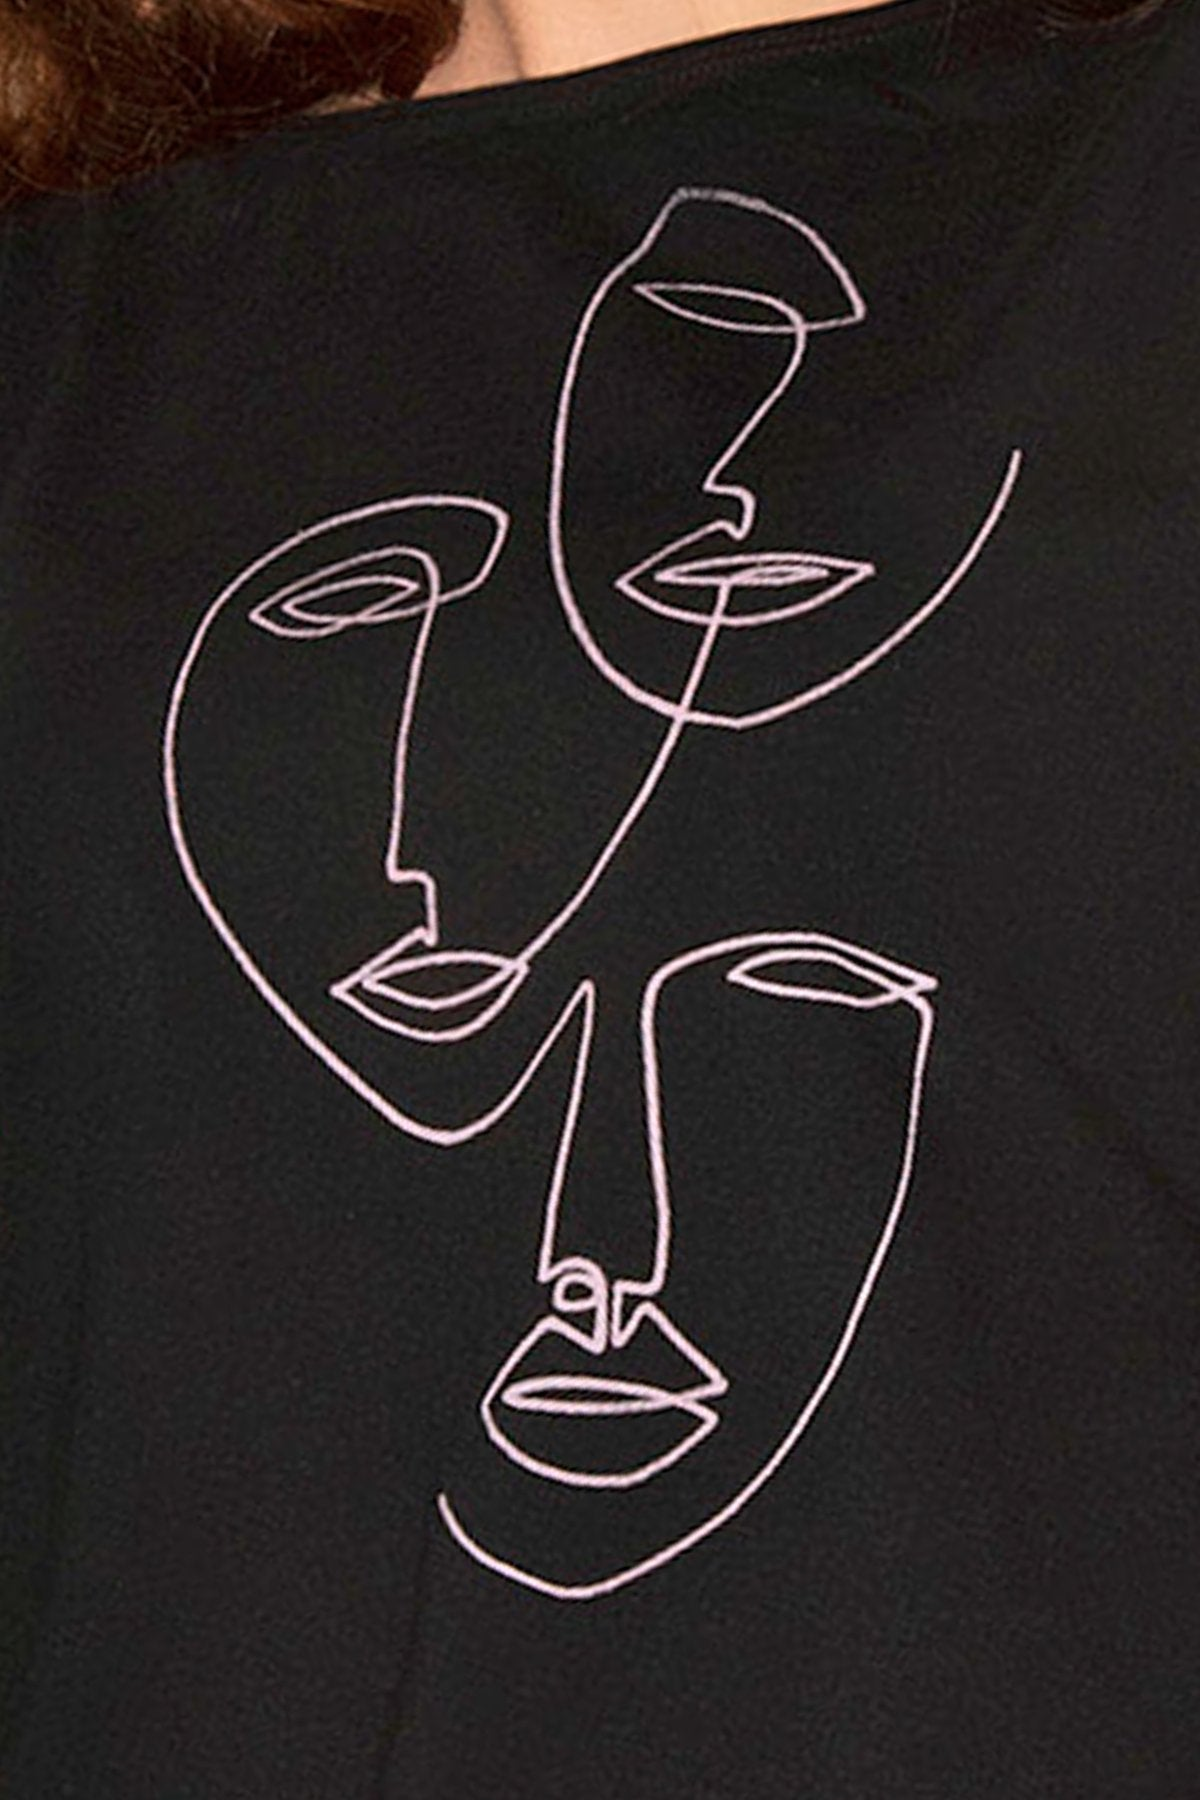 Kline Tank Top by Eve Lavoie, Black with Faces, organic cotton, hip length, fitted, sizes XS to XL, made in Quebec